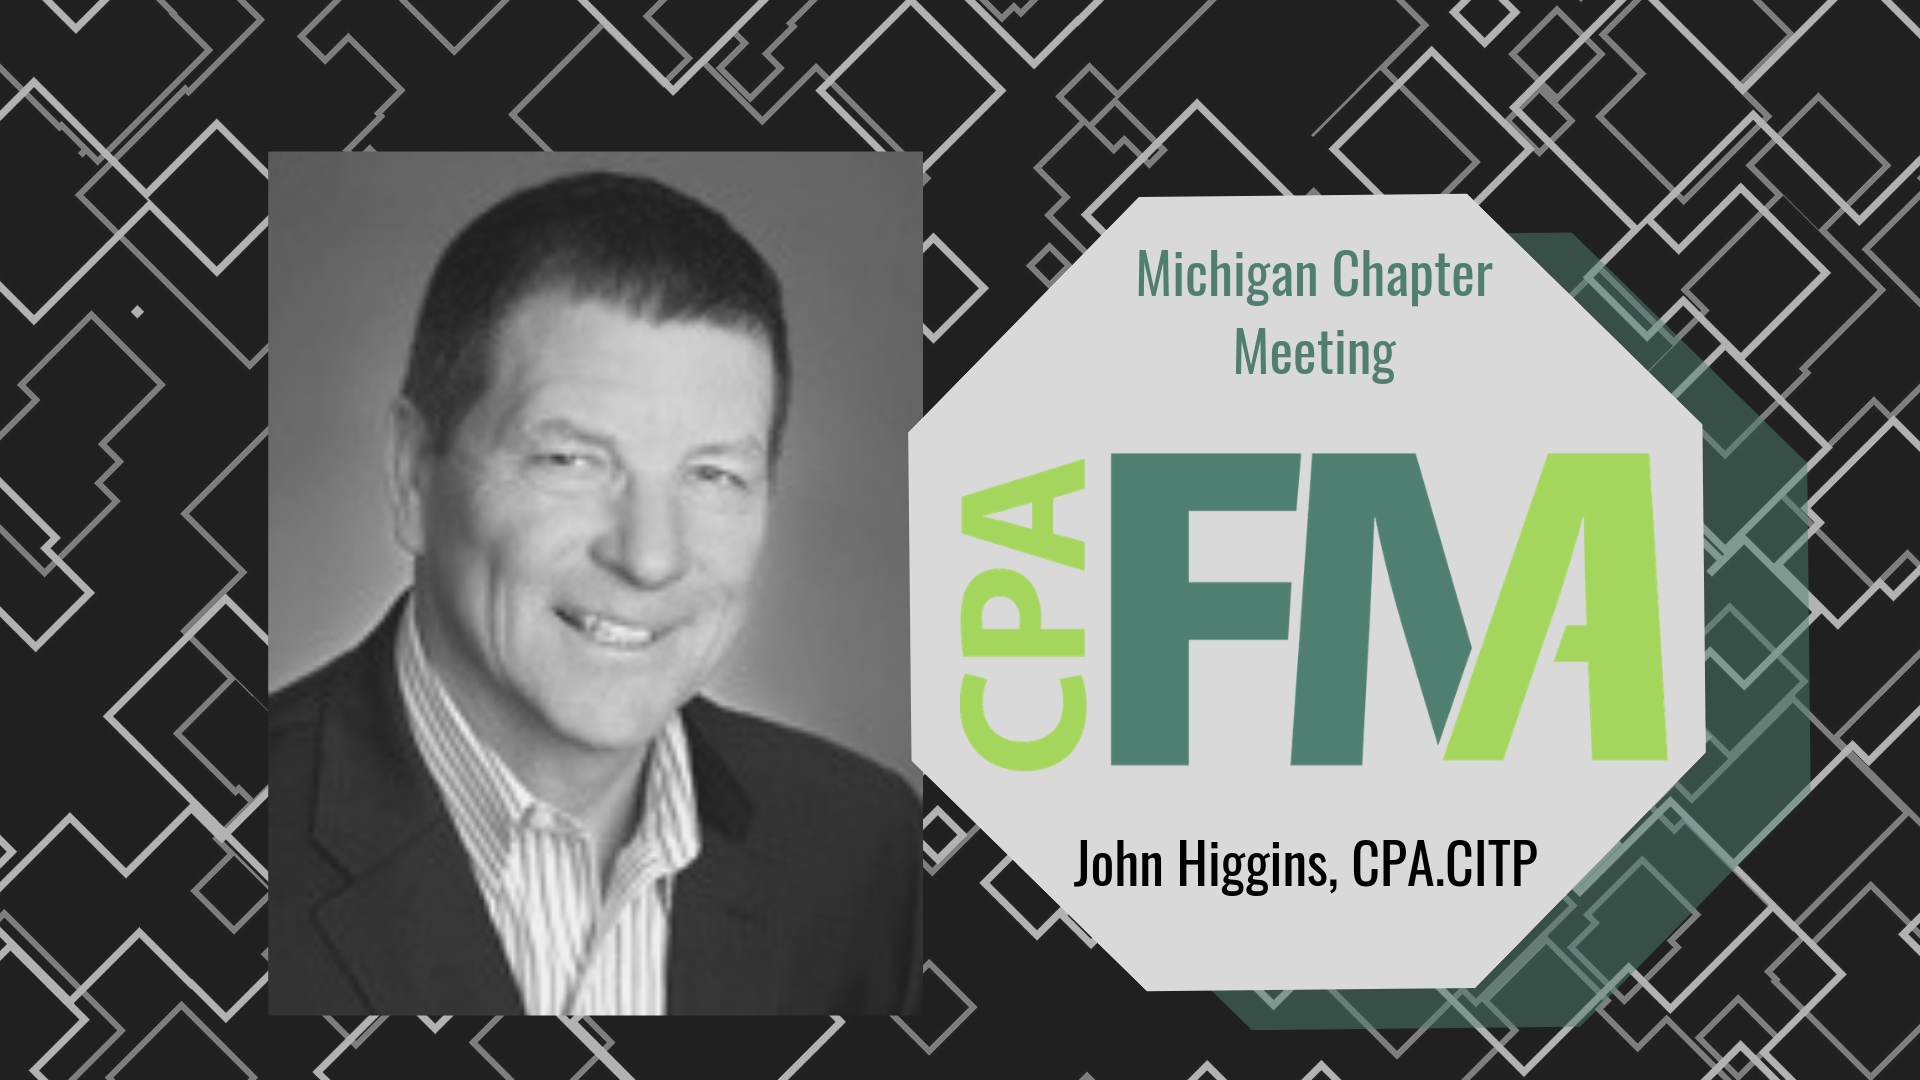 Michigan Chapter Meeting: Technology by John Higgins